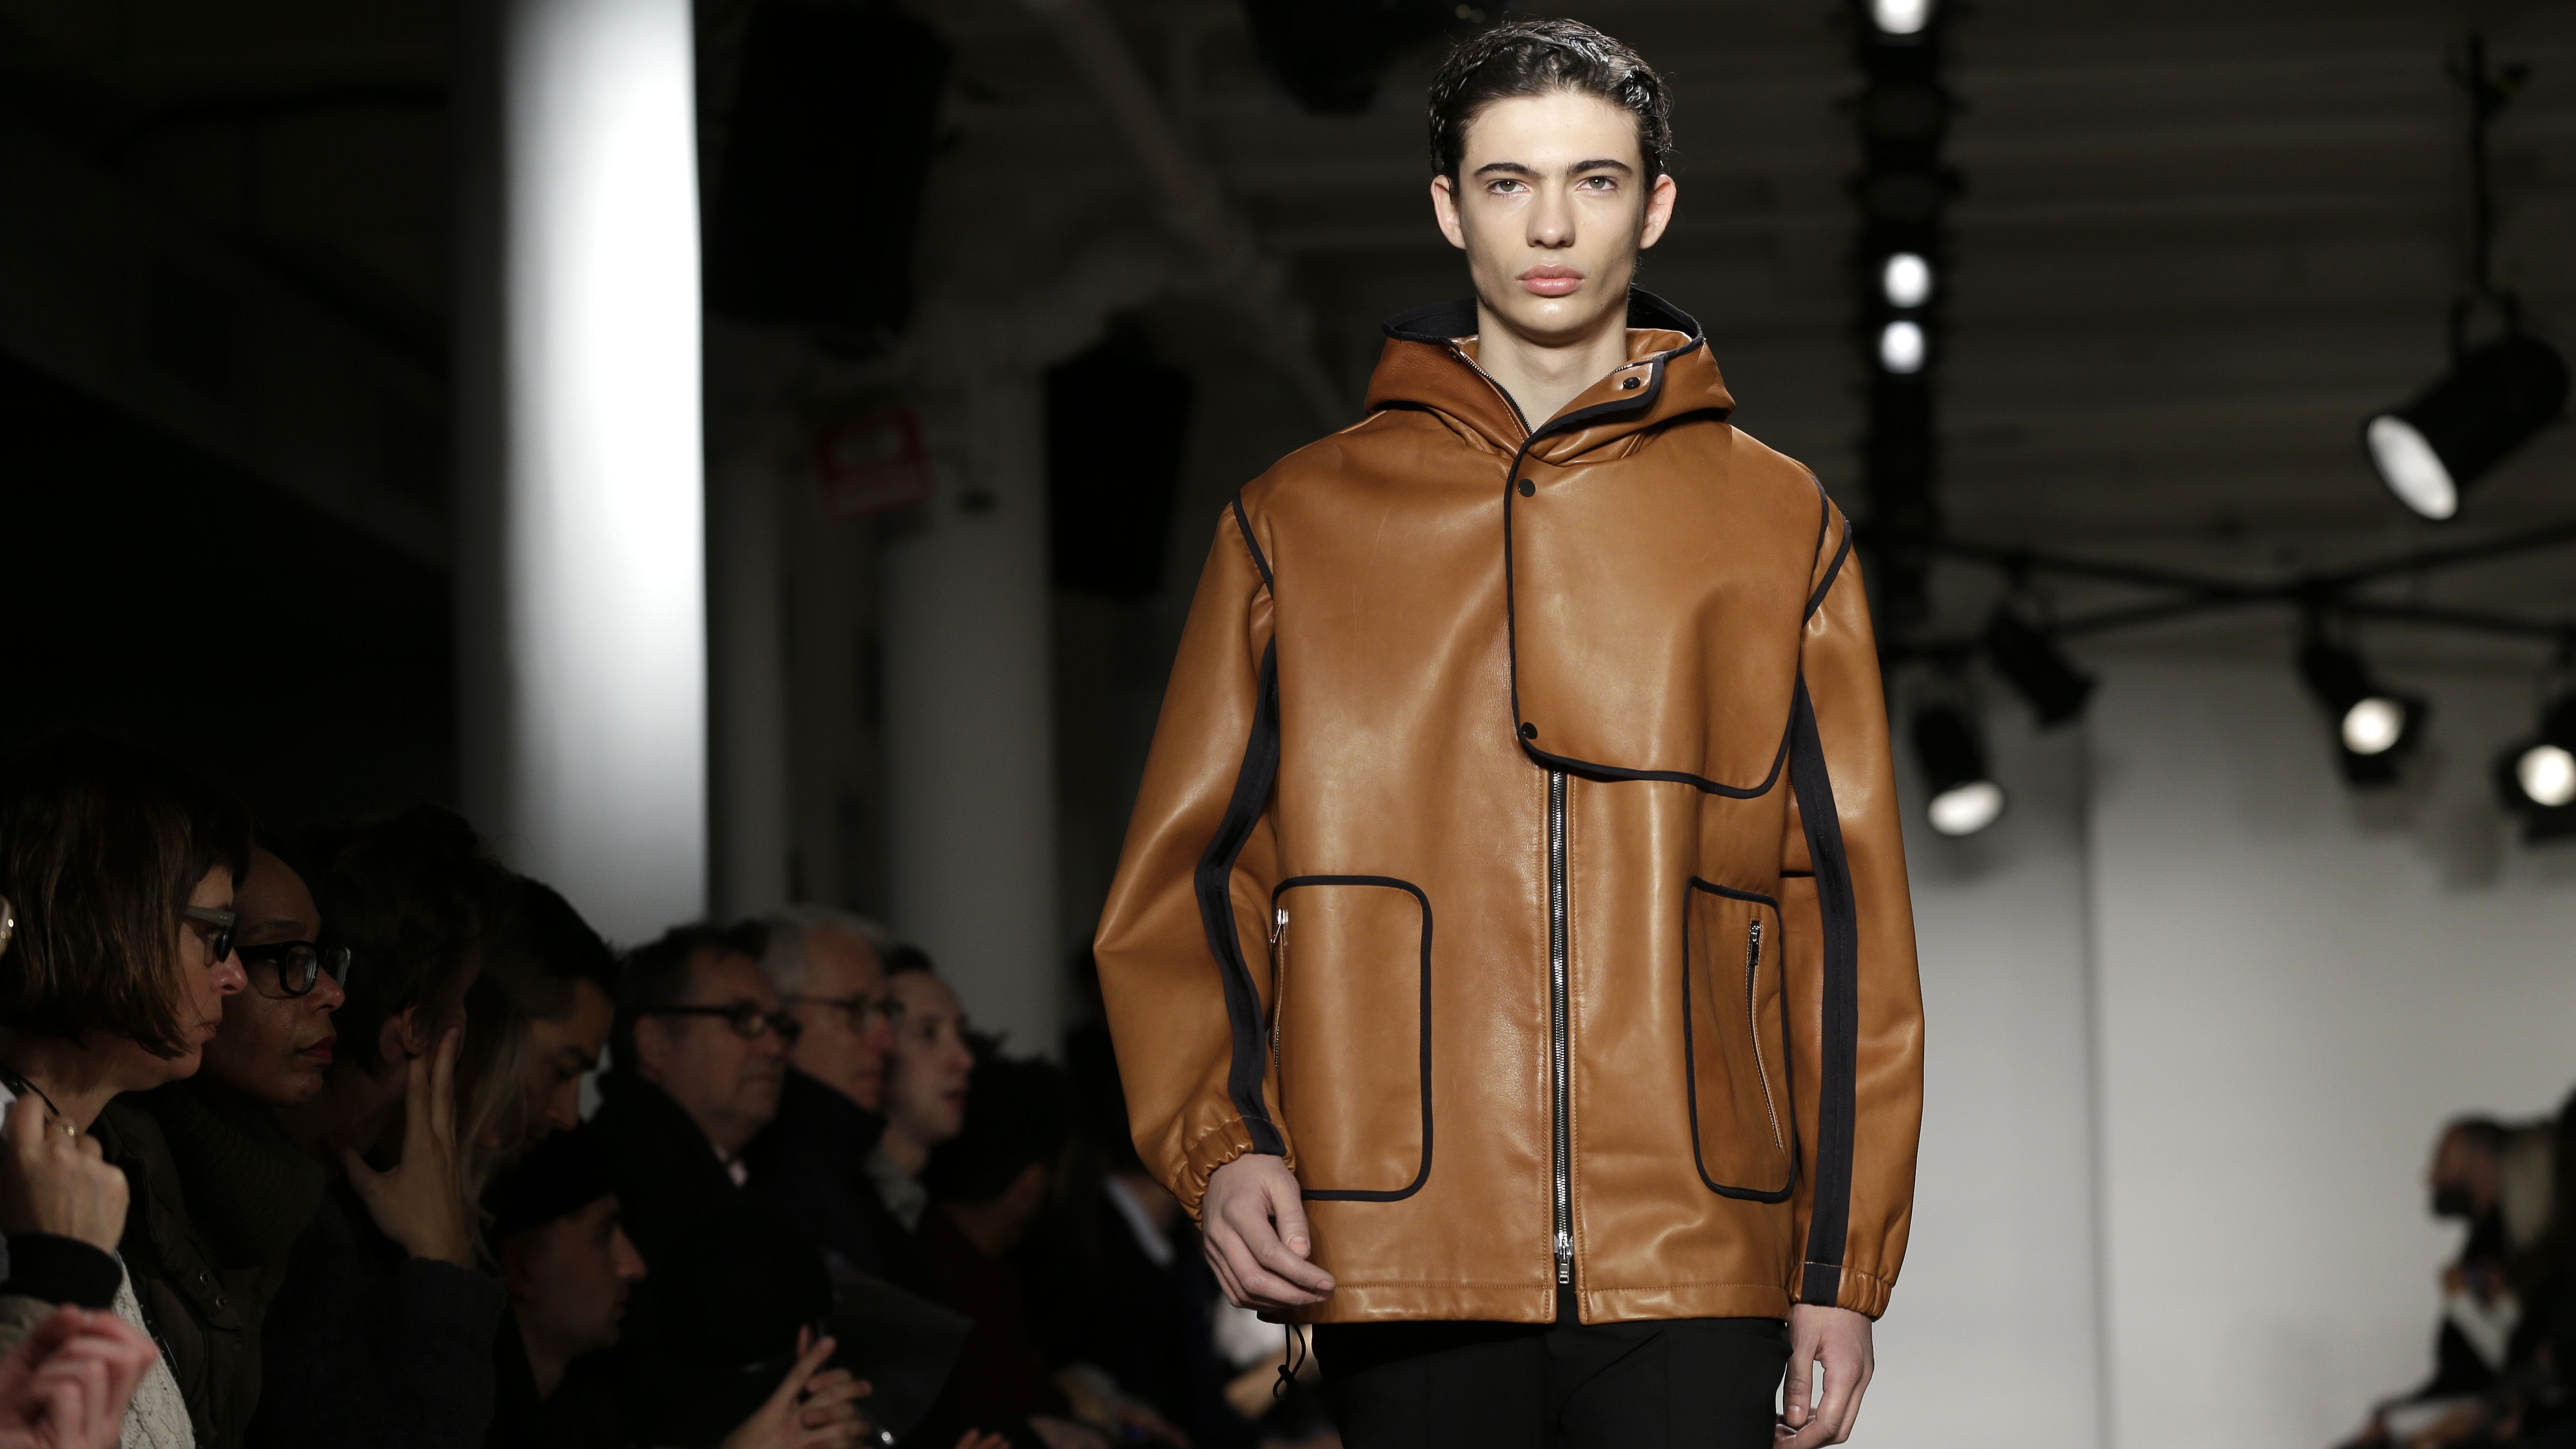 The Tim Coppens Fall 2015 collection is modeled during Fashion Week in New York, Sunday, Feb. 15, 2015. (AP Photo/Seth Wenig)